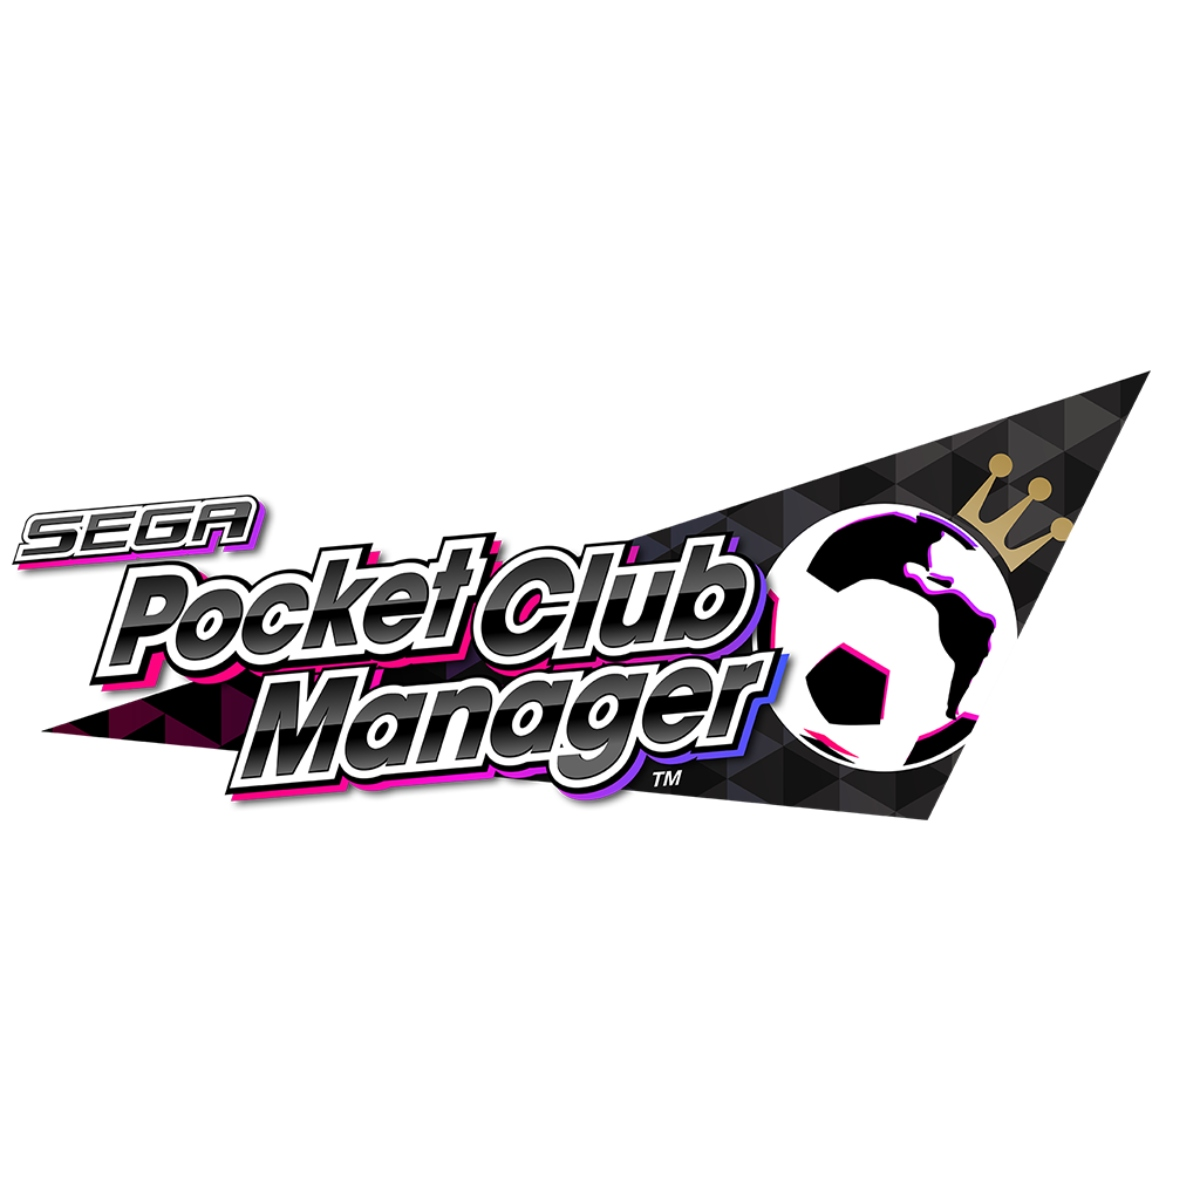 Casual football RPG Sega Pocket Club Manager kicks off today